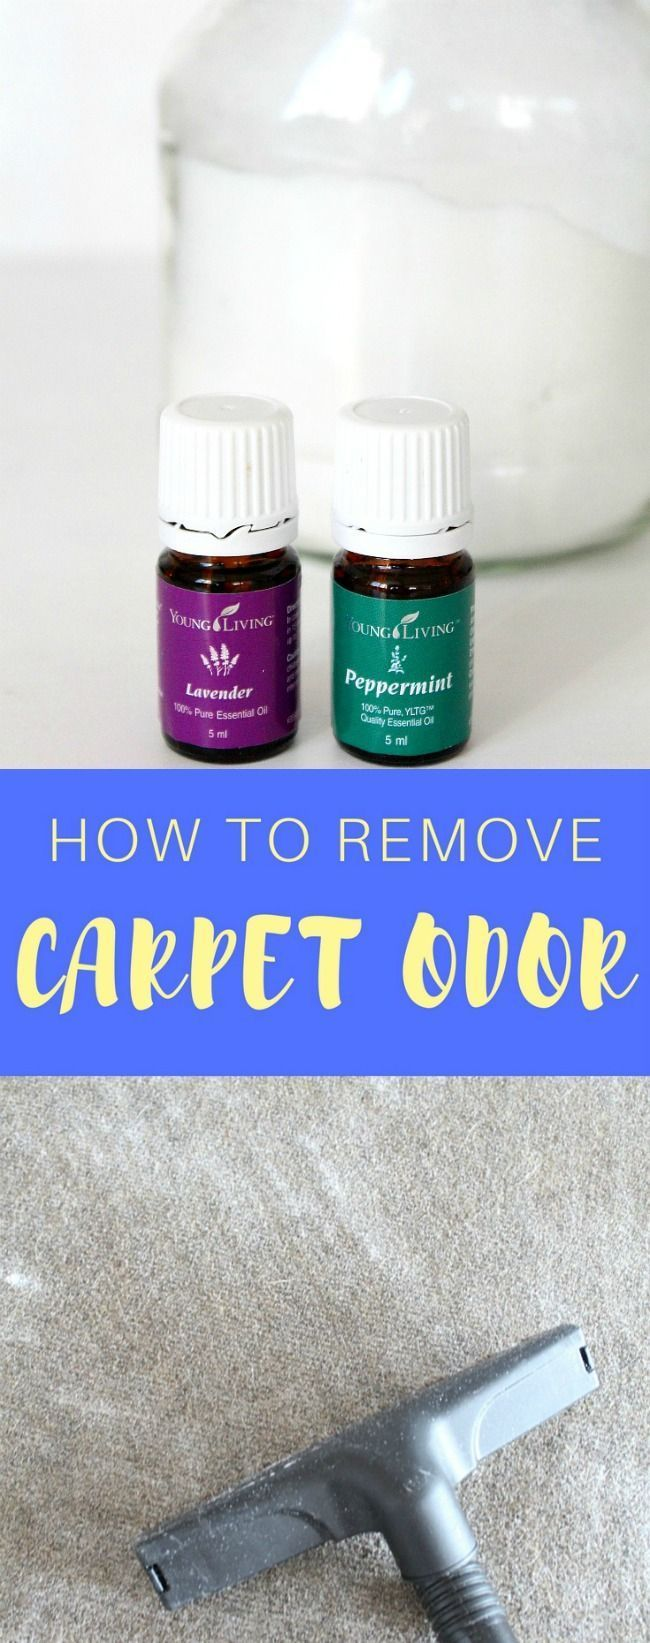 25 best removing carpet ideas on pinterest sanding wood floors how to remove carpet odor are you sick of your carpet odor get it to smell fresh and nice again the easy natural homemade way baanklon Images